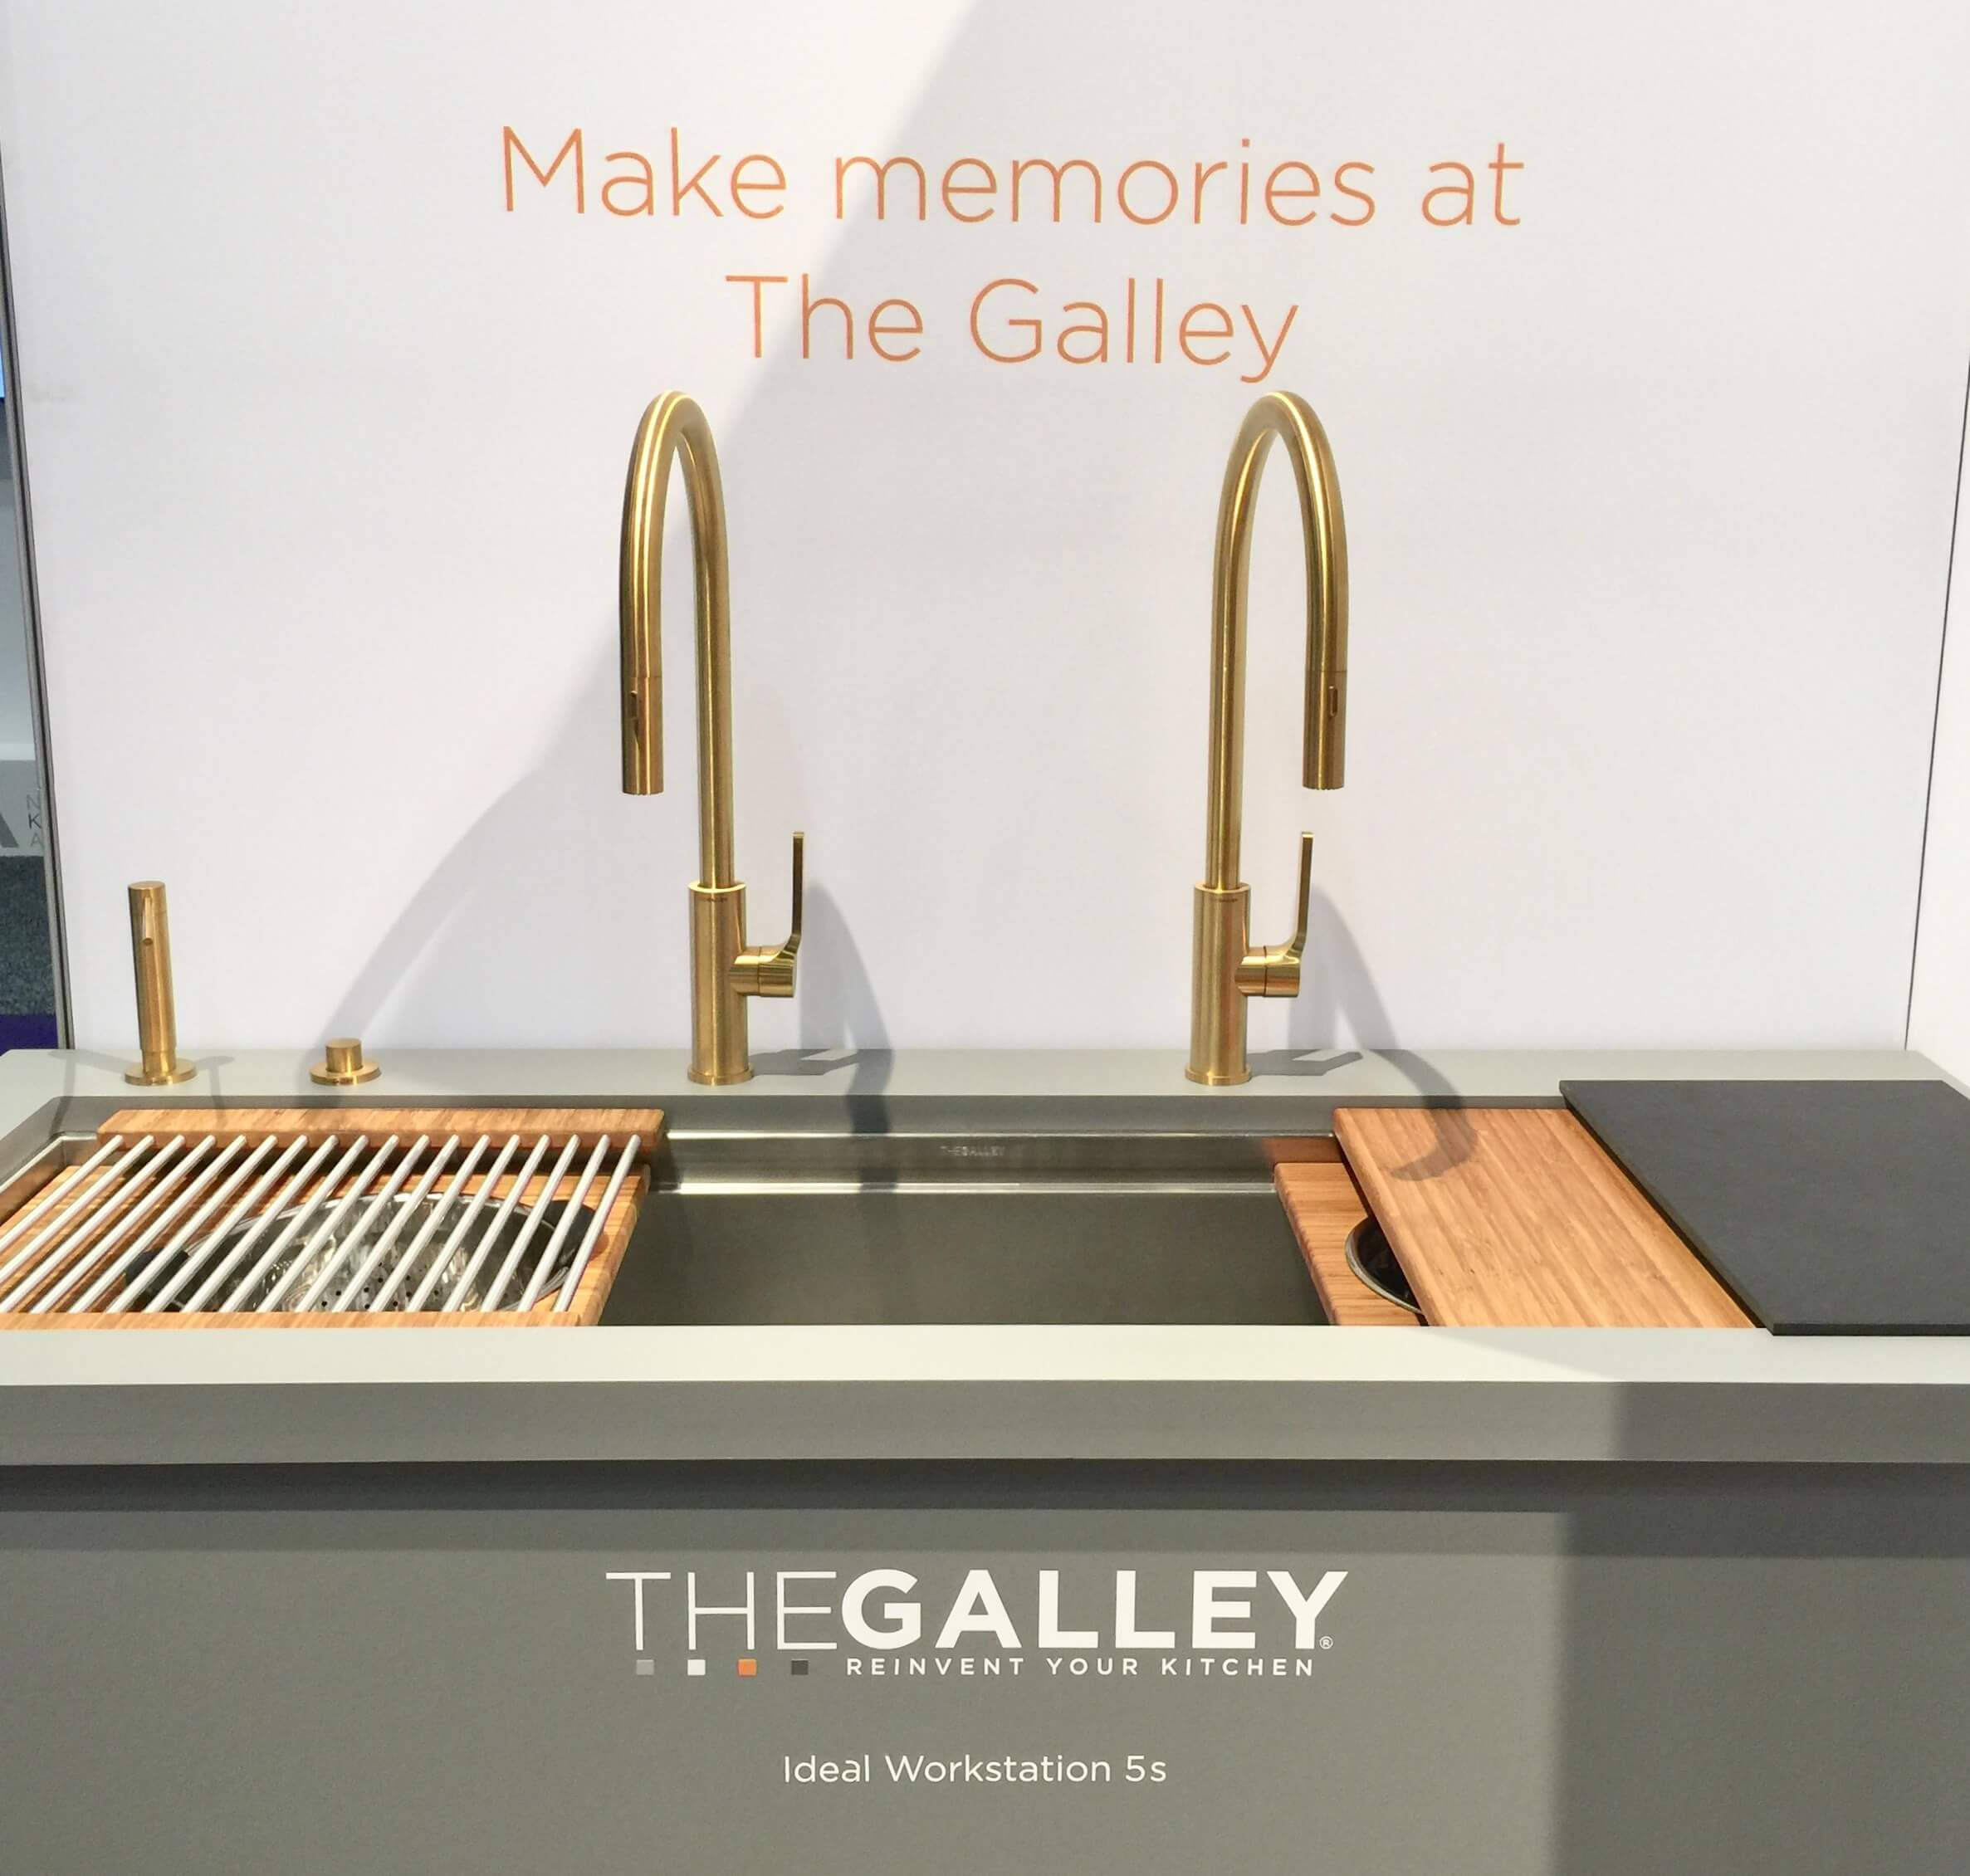 The Galley - extra long sinks and workstations | KBIS, Kitchen and Bath Industry Show